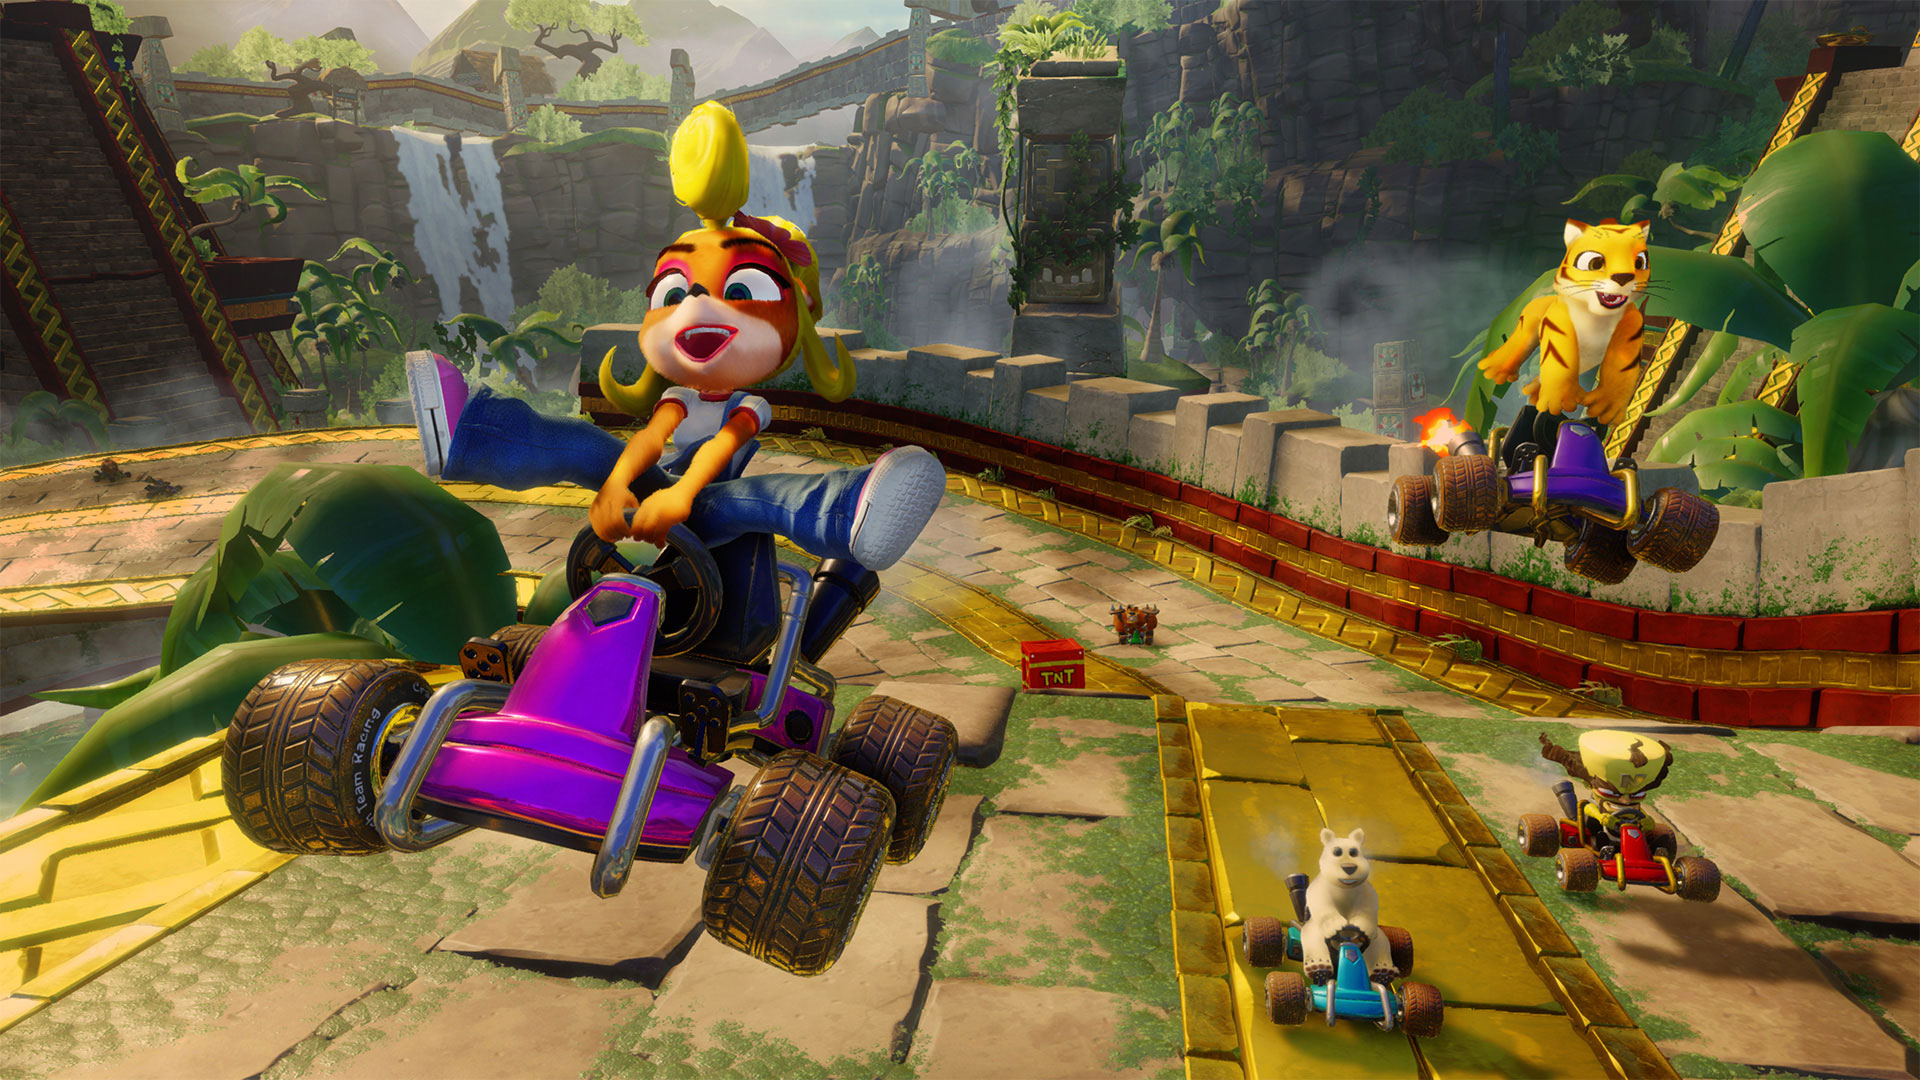 Crash Bandicoot Comes Crashing Into Release This Week With Its New High Speed Racing Game